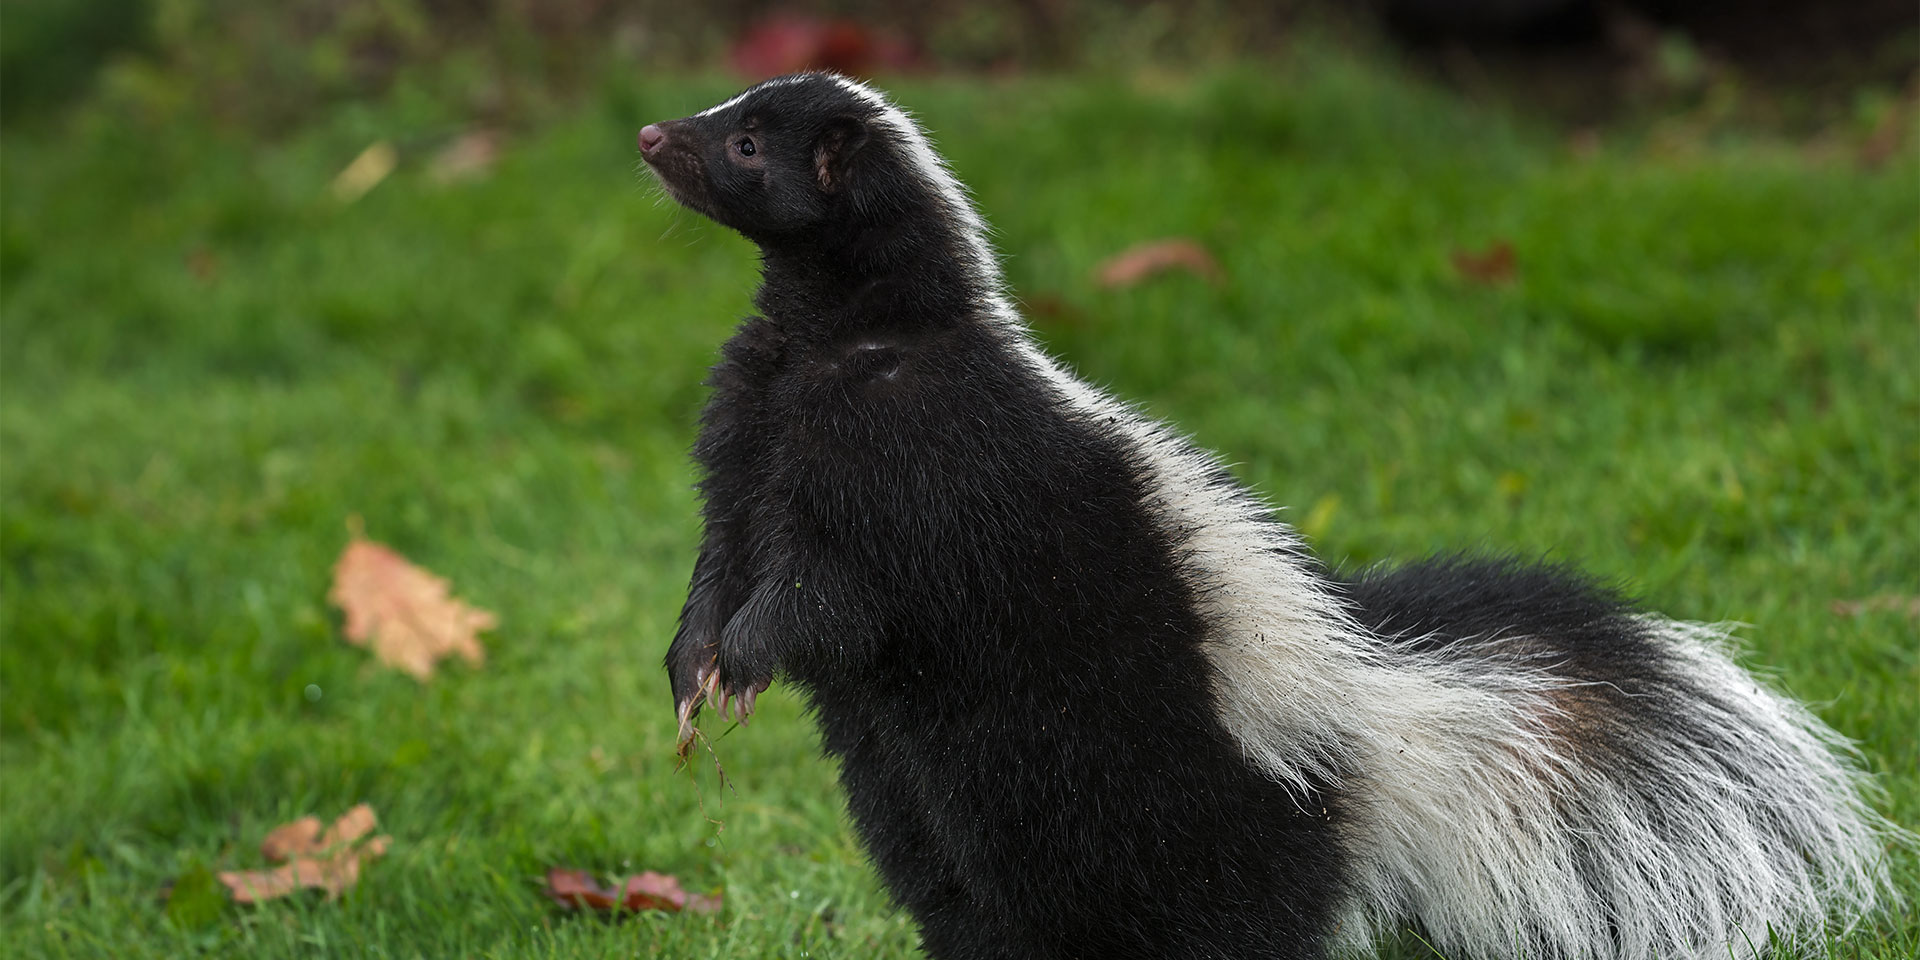 Skunk standing up on grass